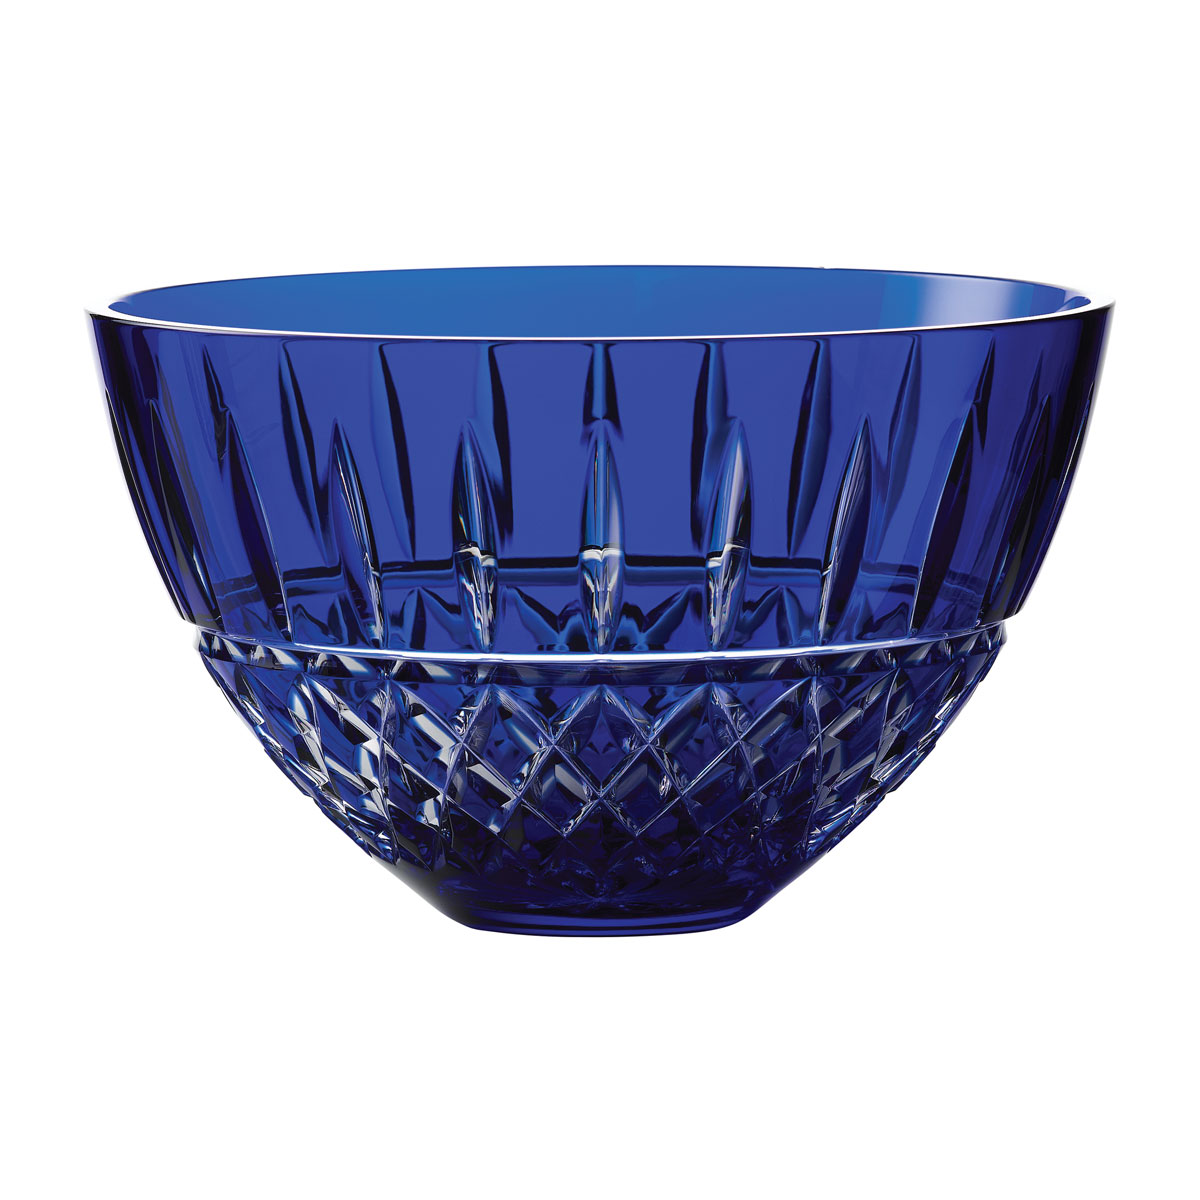 "Waterford Treasures of the Sea, Tramore 8"" Blue Bowl"